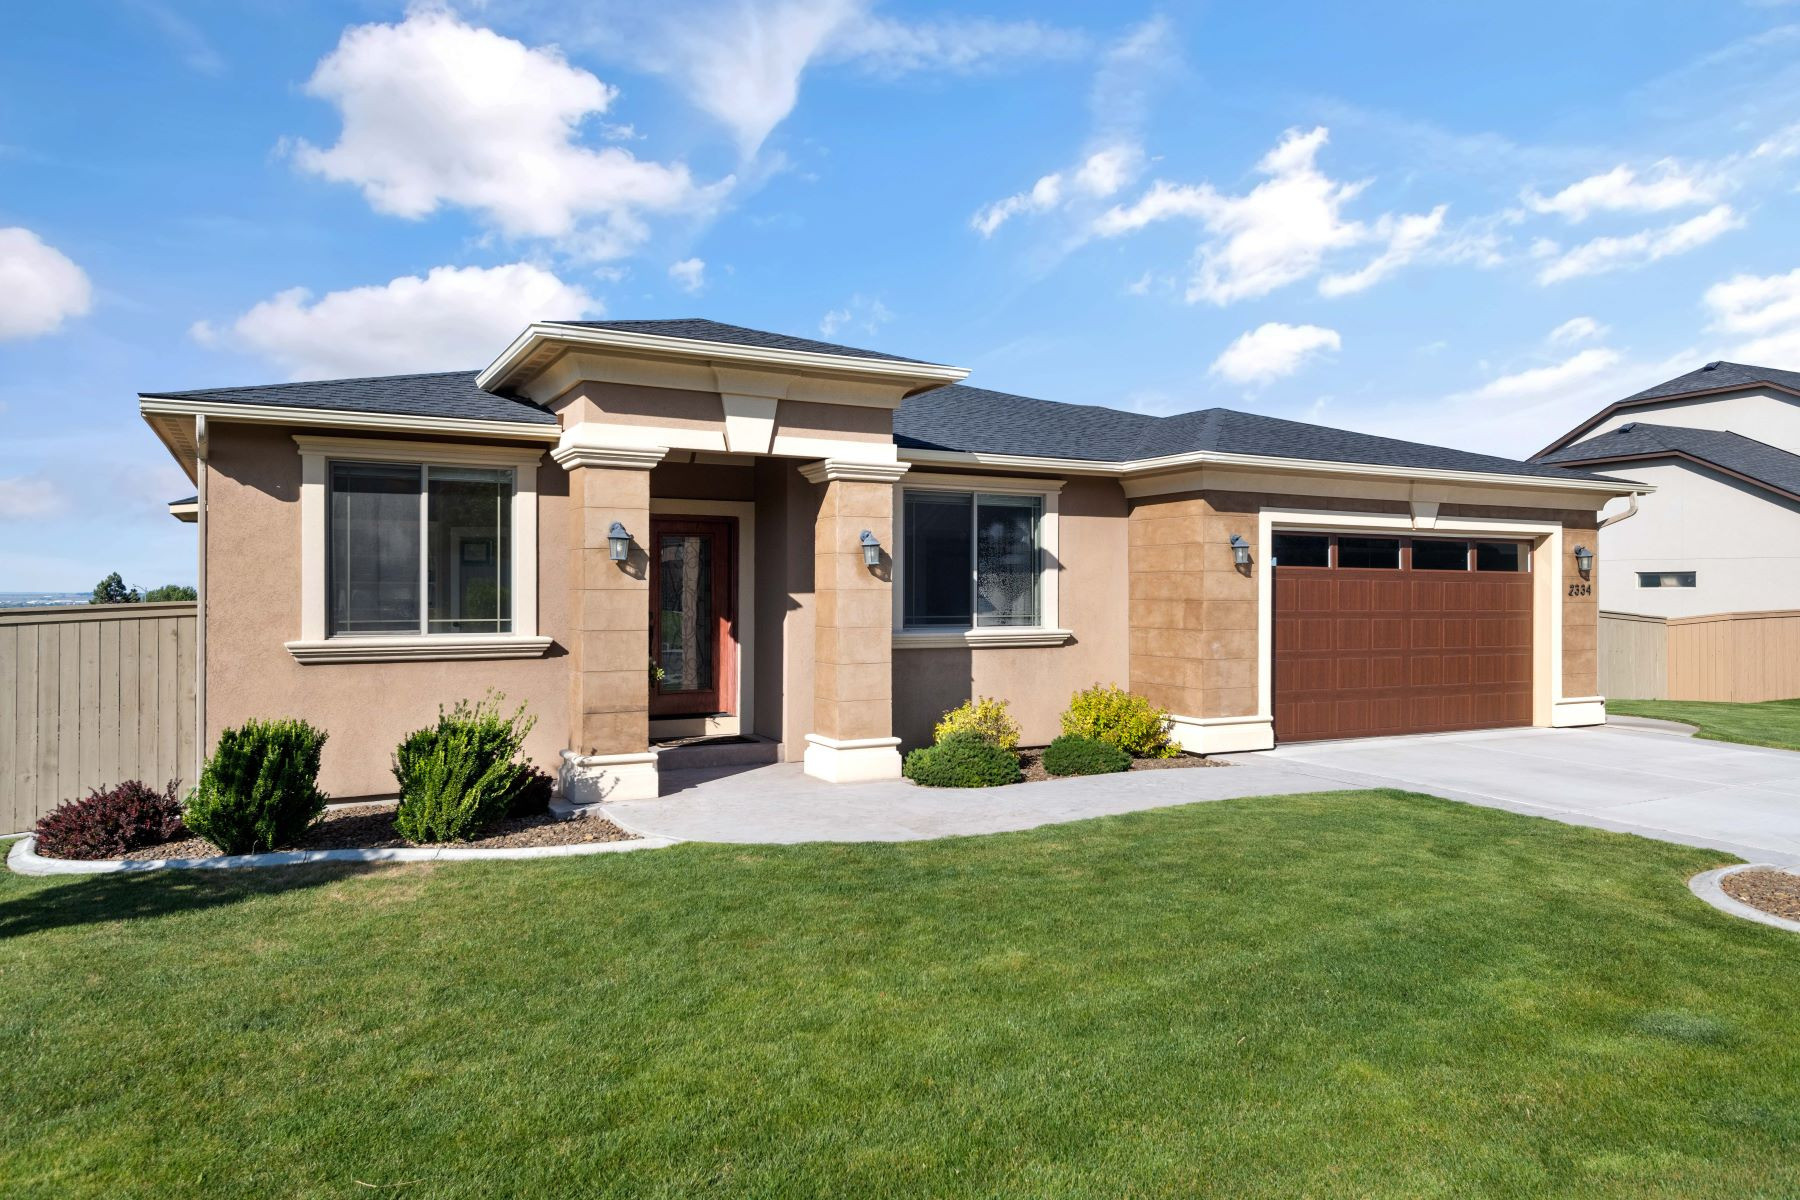 Single Family Homes for Sale at panoramic views,workshop/storage room area 2334 W 49th Avenue, Kennewick, Washington 99337 United States